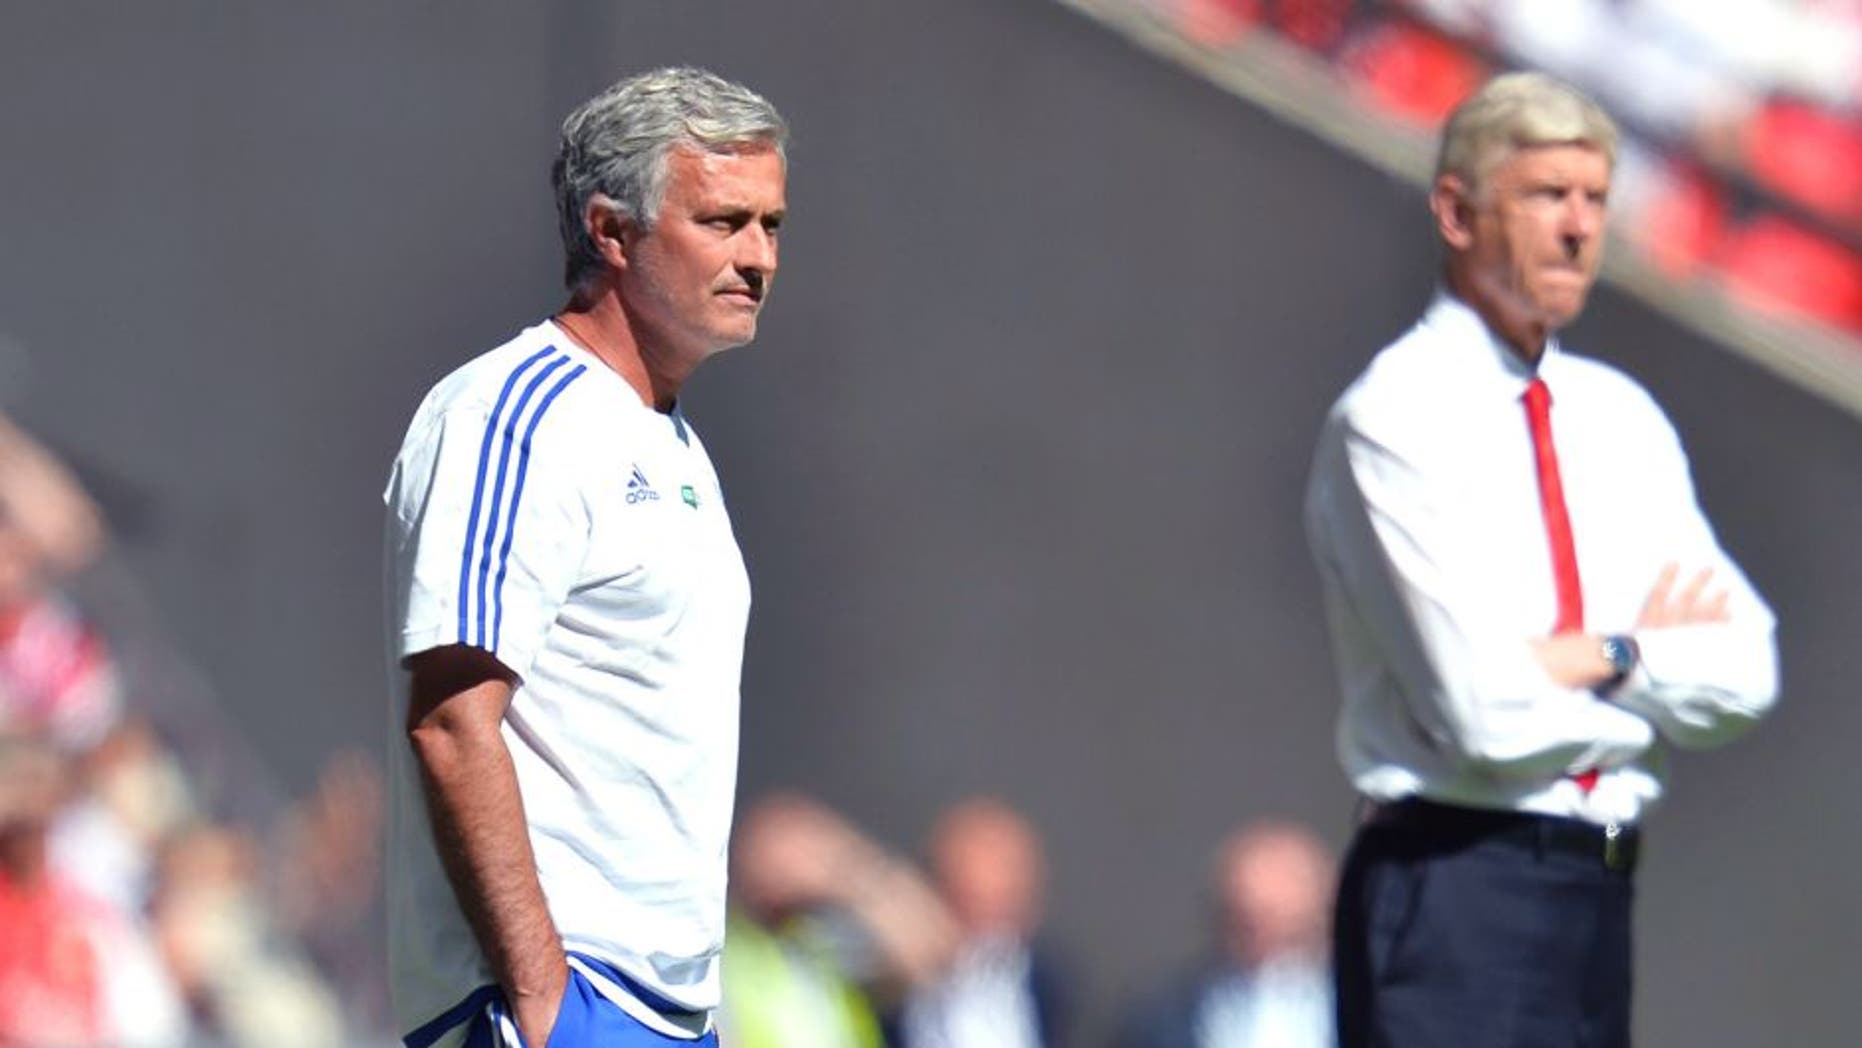 Chelsea's Portuguese manager Jose Mourinho (L) and Arsenal's French manager Arsene Wenger (R) watch from the side during the FA Community Shield football match between Arsenal and Chelsea at Wembley Stadium in north London on August 2, 2015. AFP PHOTO / GLYN KIRK -- NOT FOR MARKETING OR ADVERTISING USE / RESTRICTED TO EDITORIAL USE -- (Photo credit should read GLYN KIRK/AFP/Getty Images)